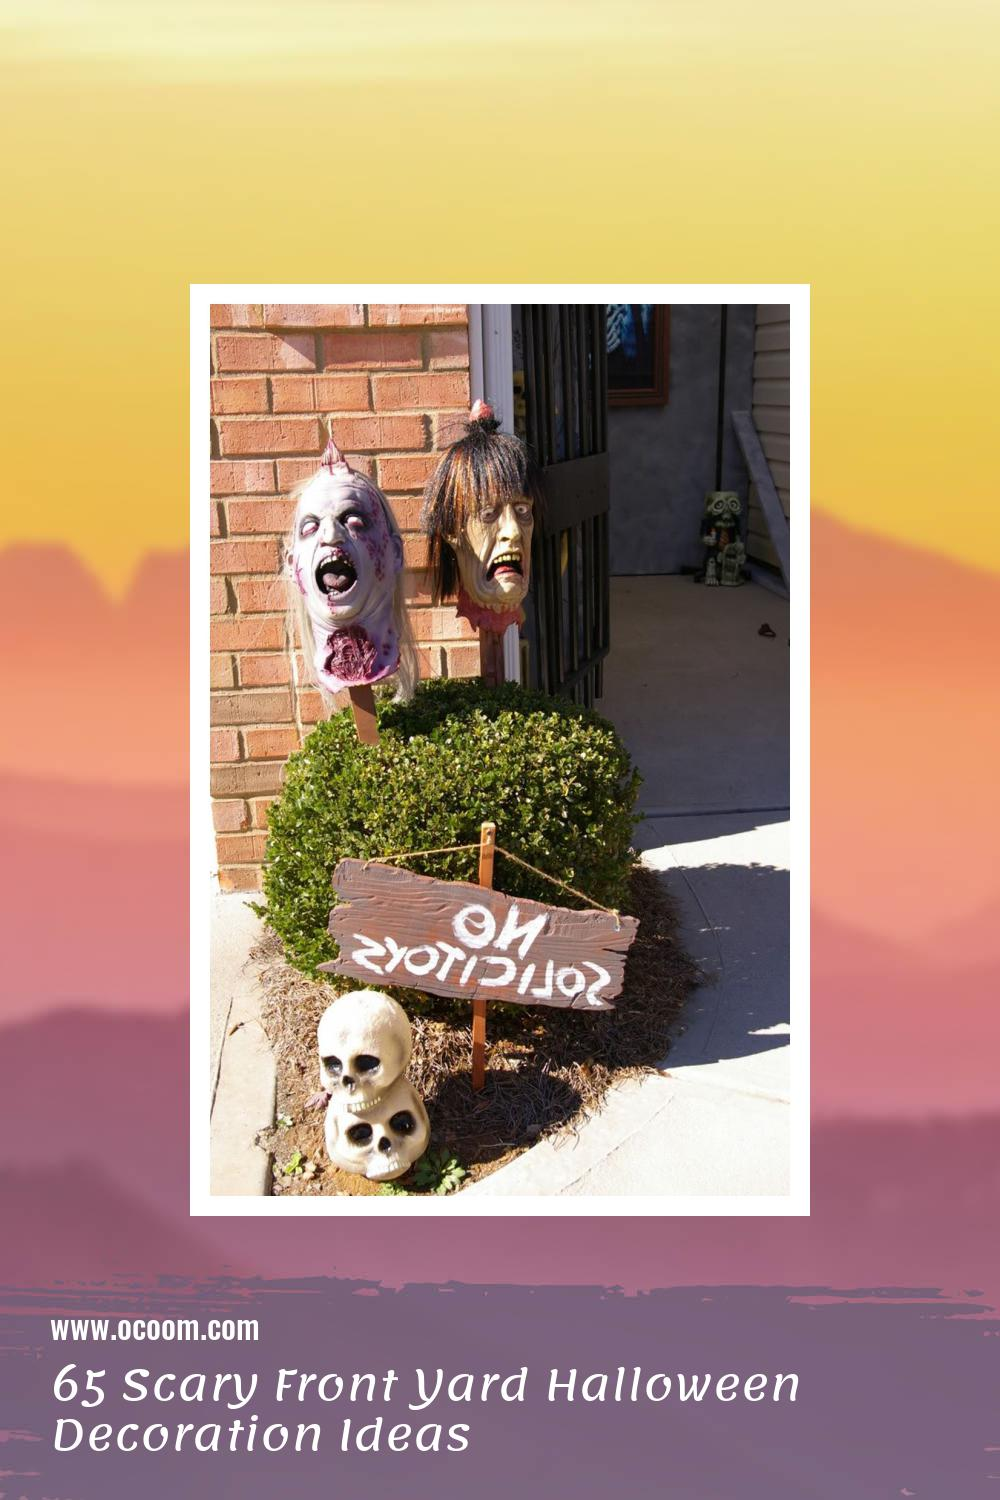 65 Scary Front Yard Halloween Decoration Ideas 22